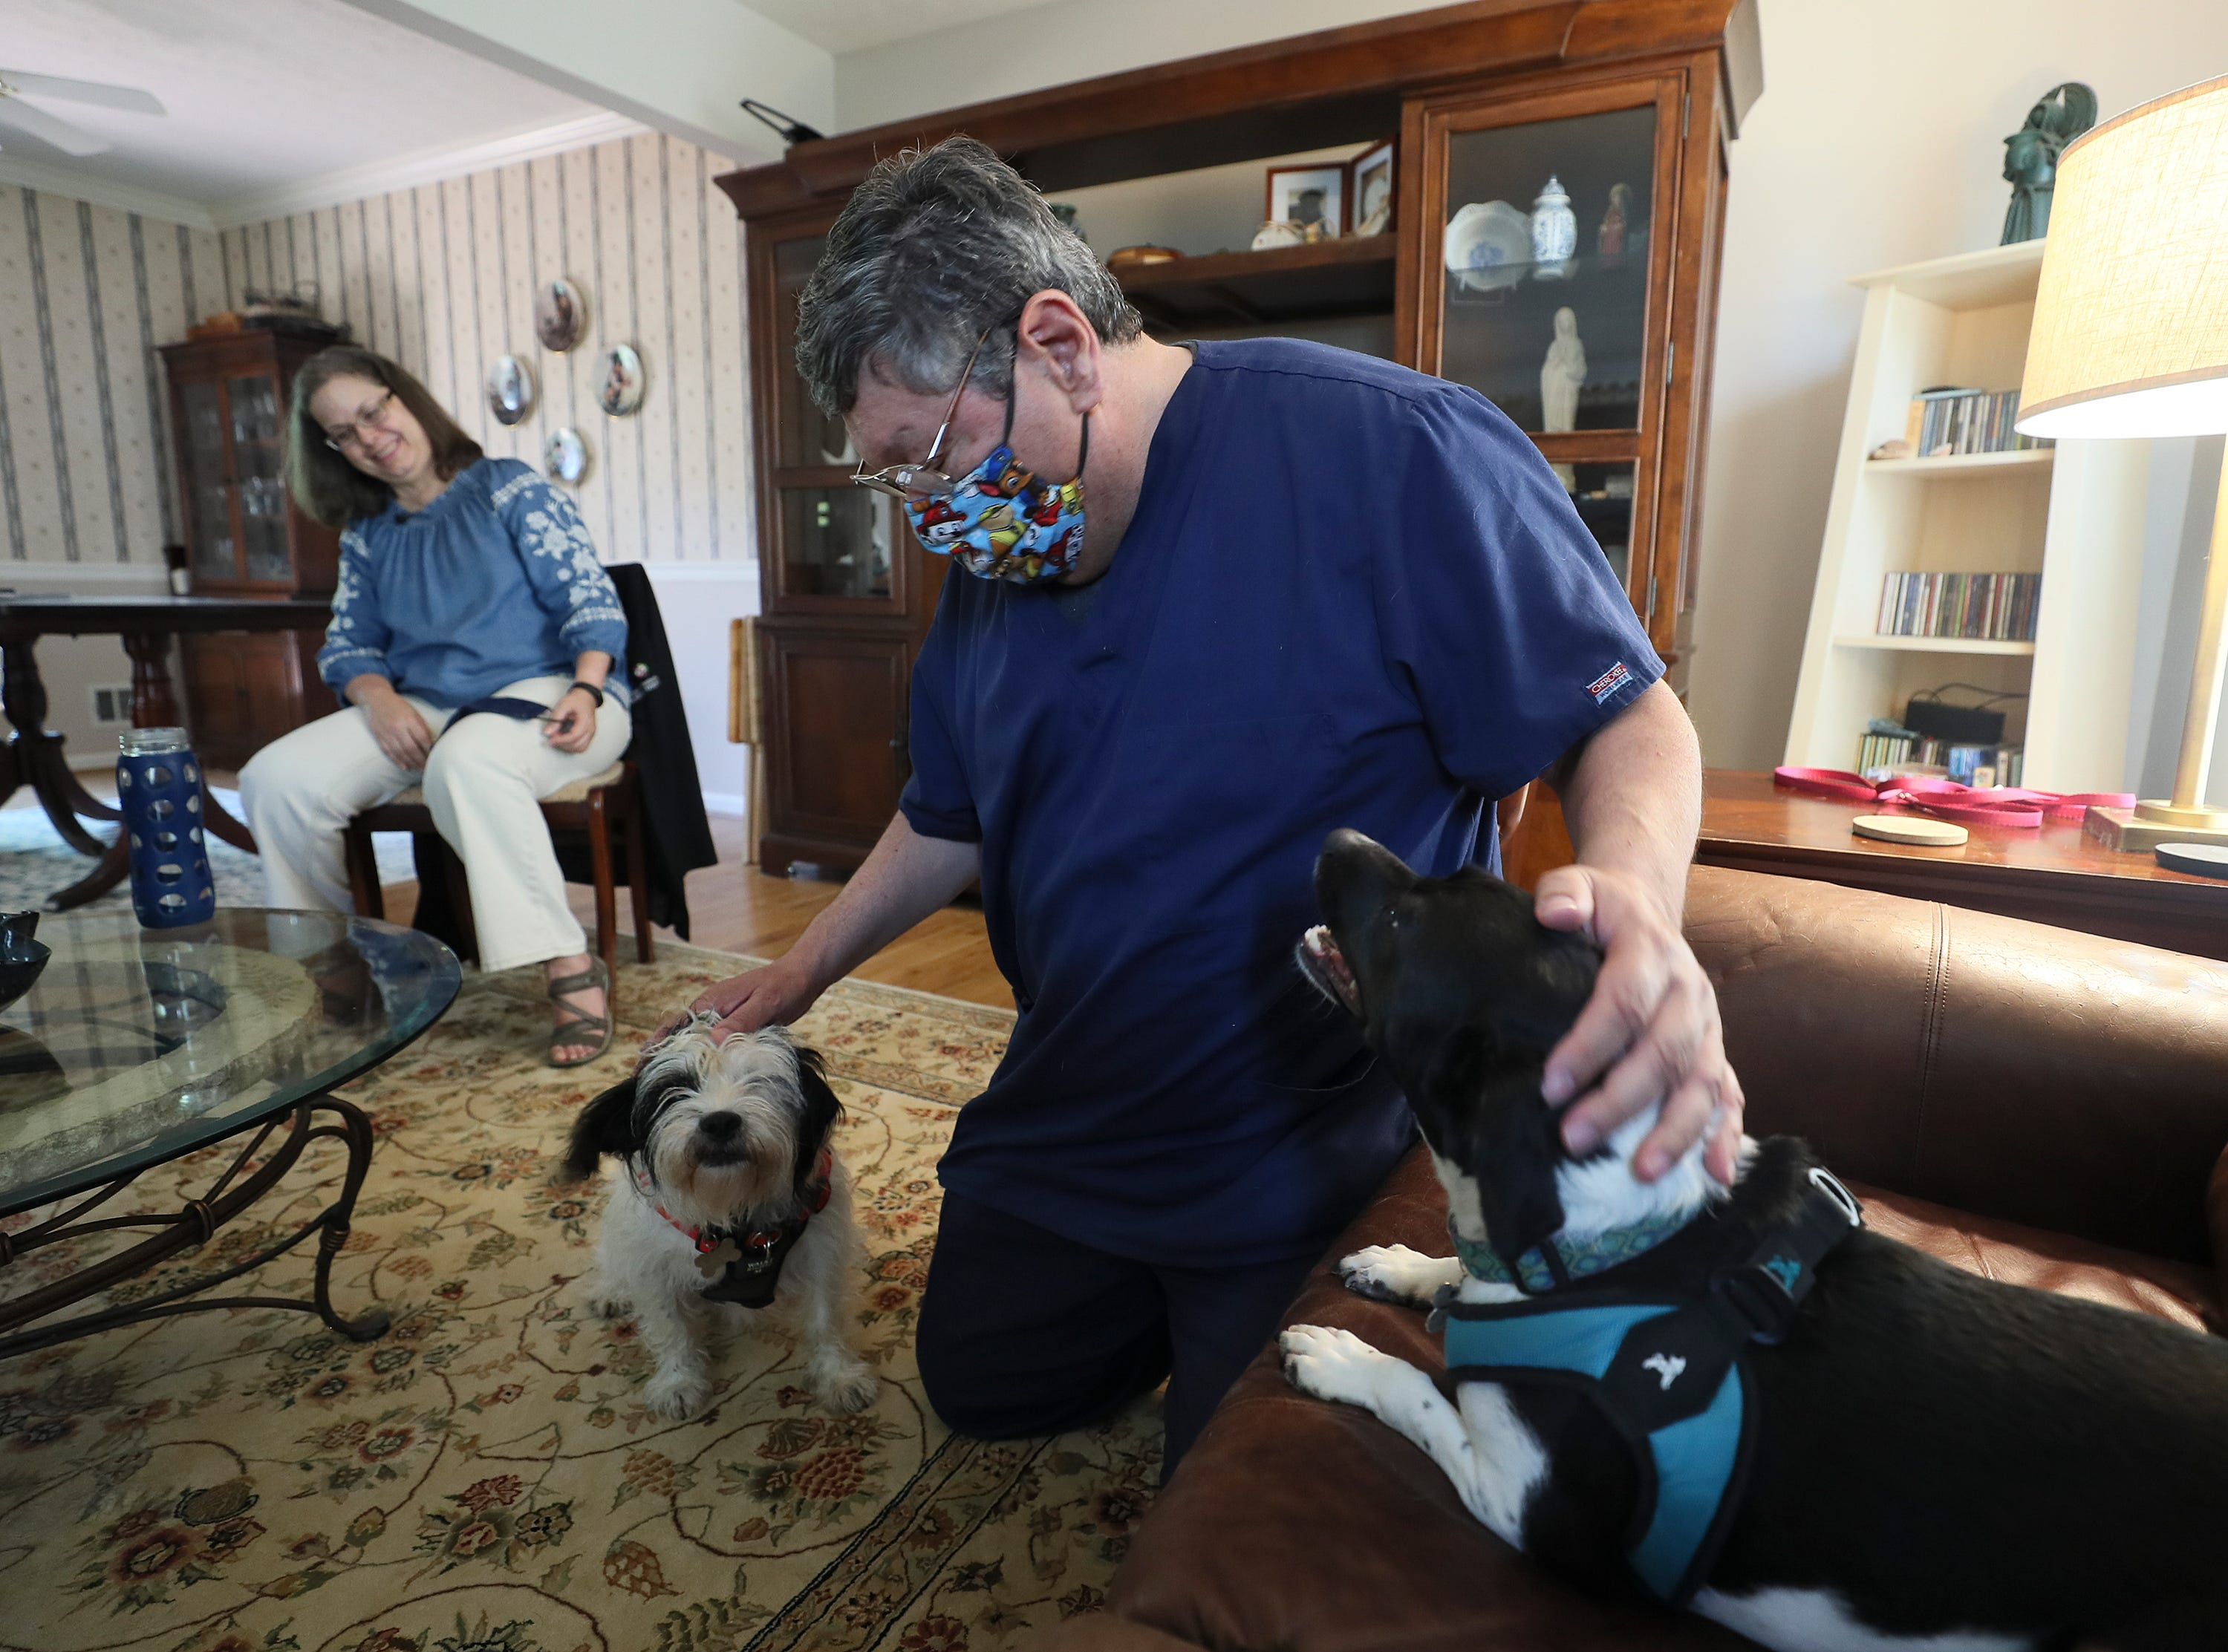 Adam Ruiz enjoys time at home with his wife and two dogs July 24.